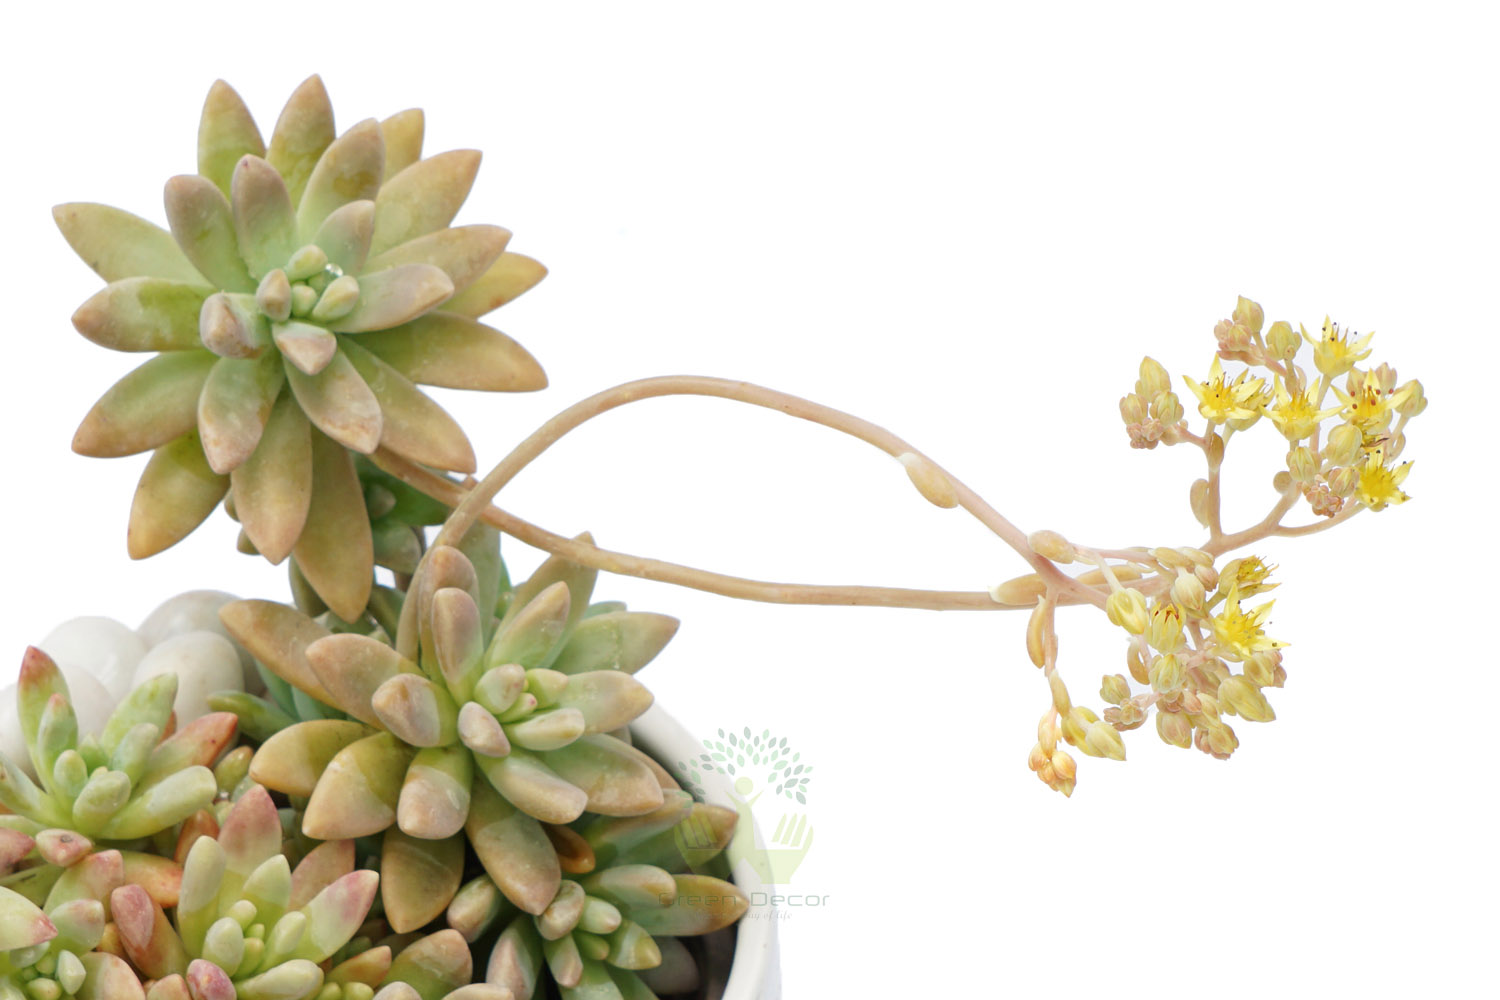 Buy Sedum Rubrotinctum Aurora Plants , White Pots and seeds in Delhi NCR by the best online nursery shop Greendecor.